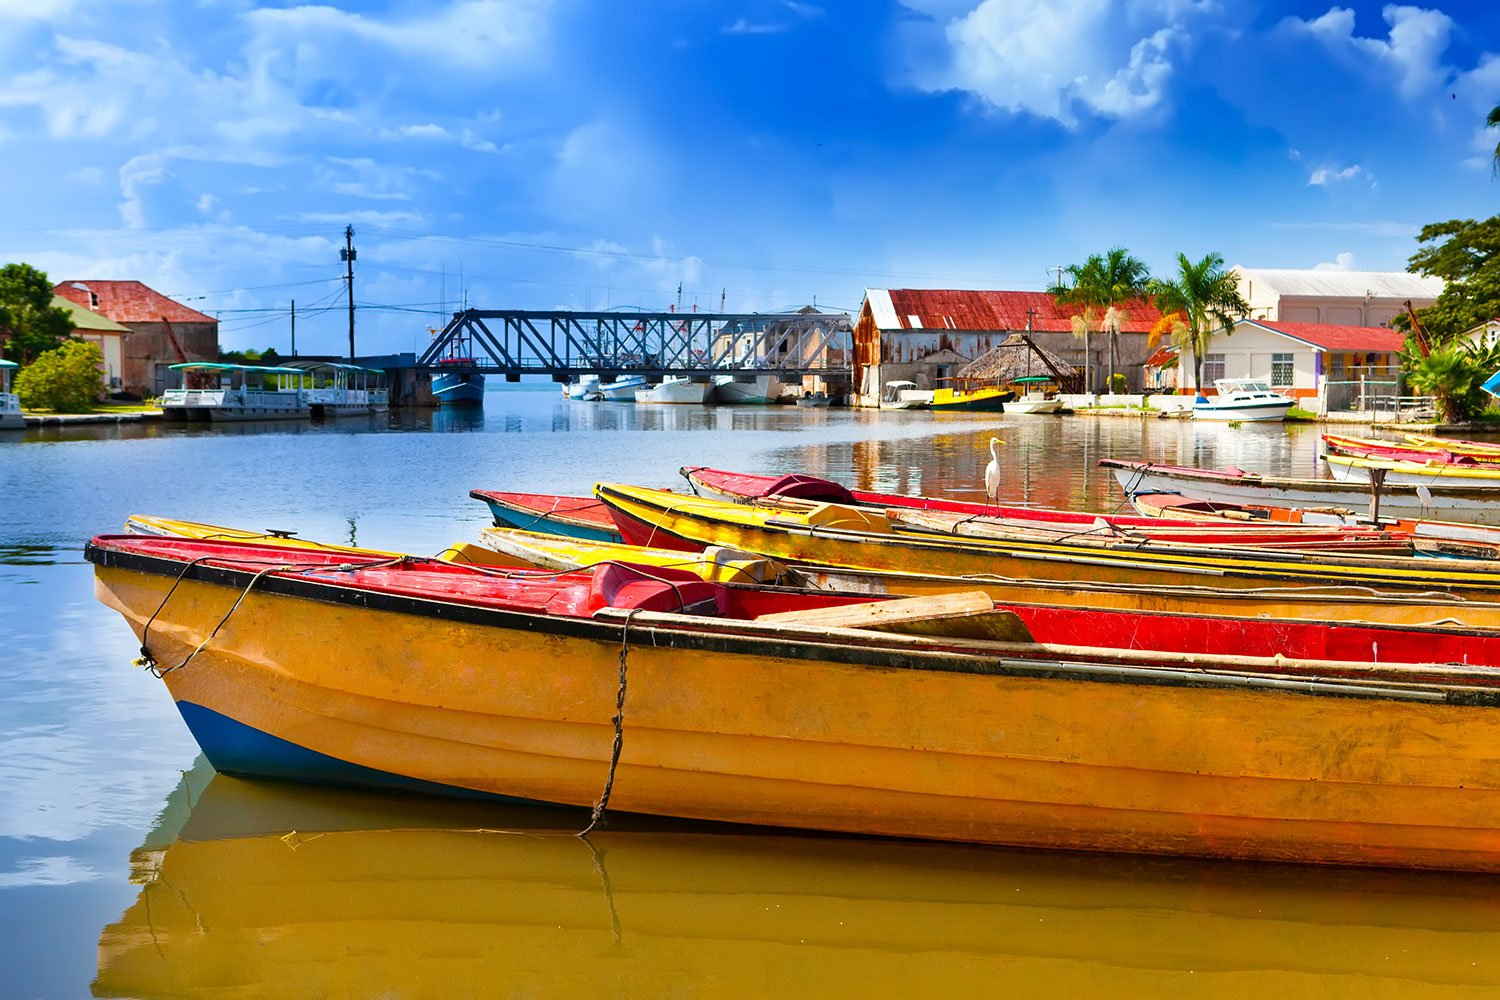 Small, brightly-colored boats line shallow water in Jamaica